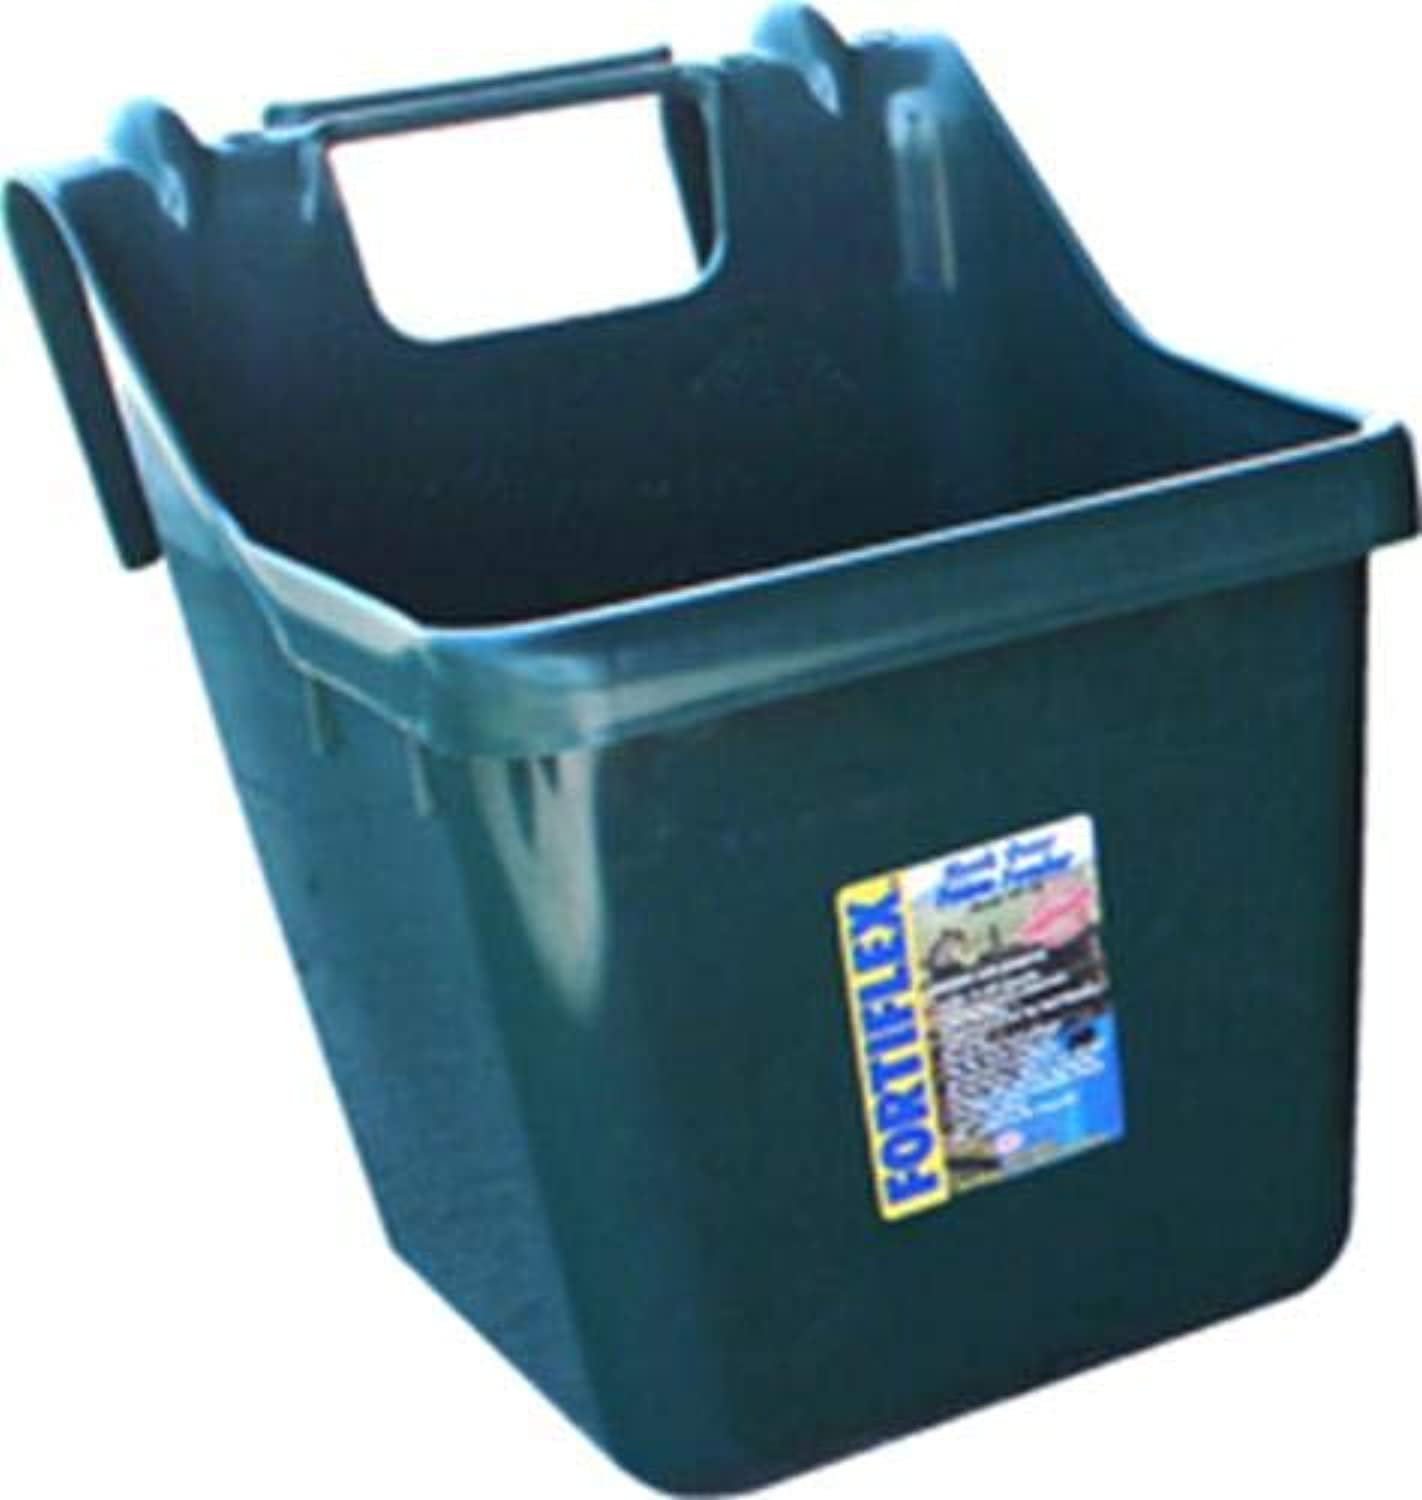 Fortex Industries Inc HF16 Dark Green Hook Over Feeder Hf16 16 Quart